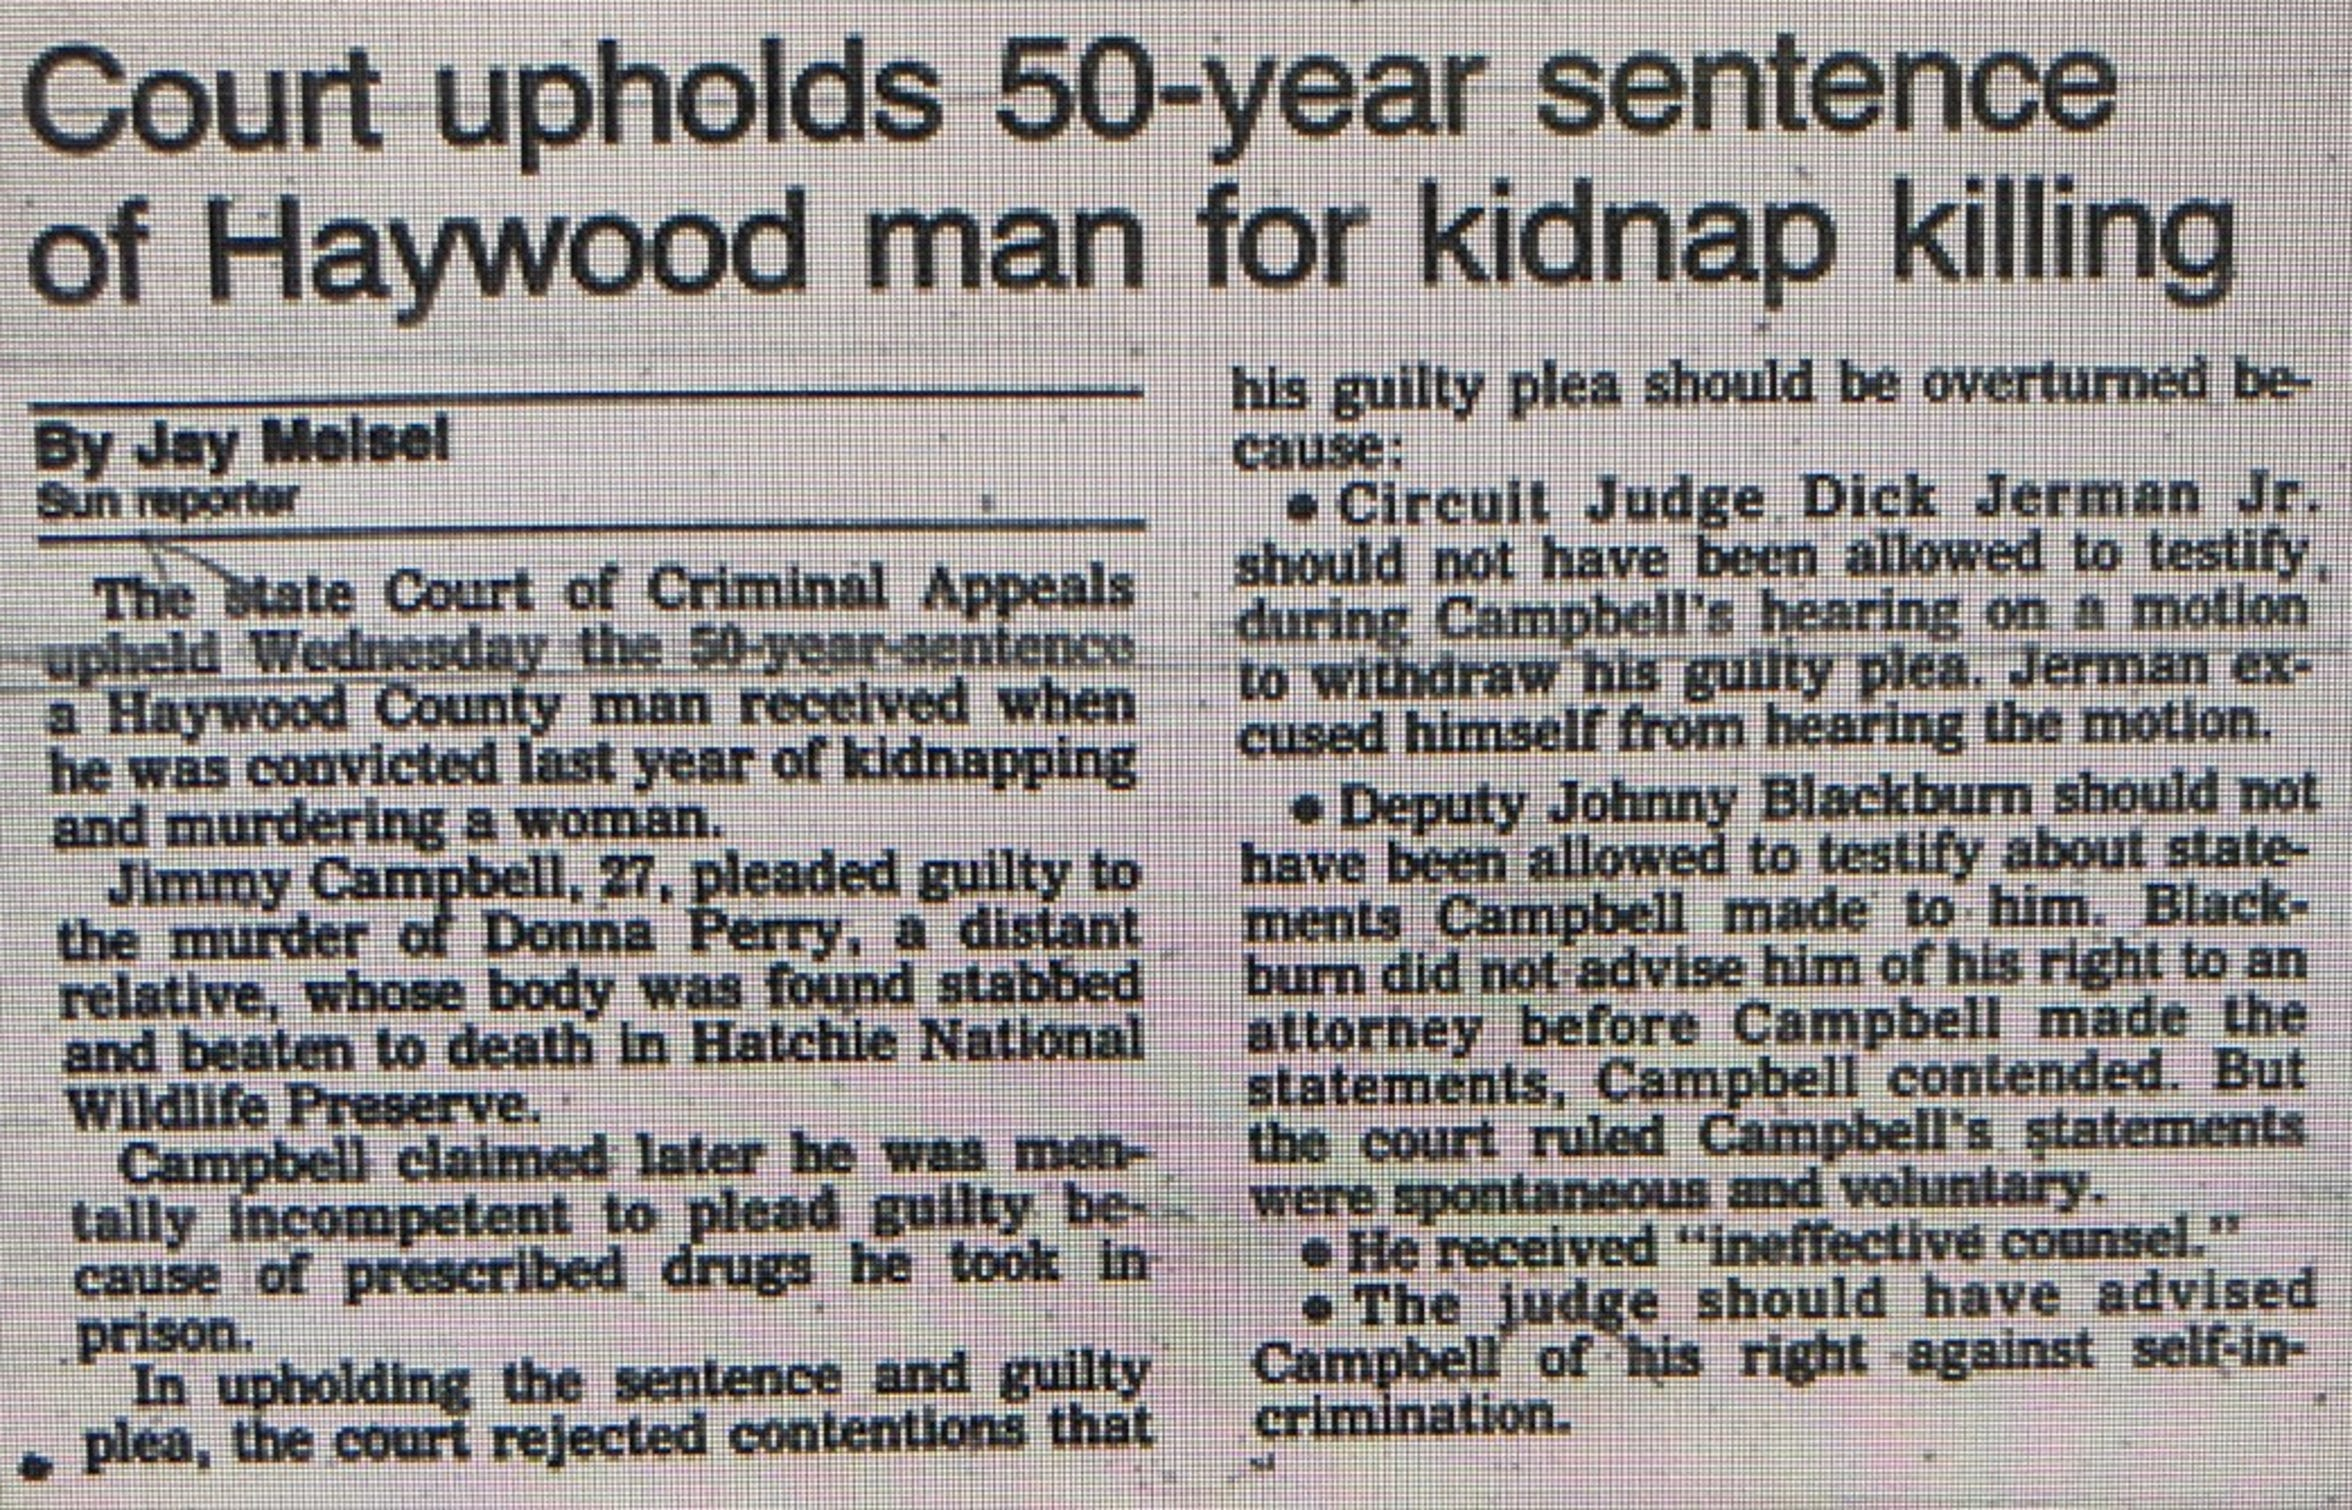 The Jackson Sun reported on the Court of Criminal Appeals' affirmation of Jimmy Edward Campbell's 50-year sentence for the kidnapping and murder of Donna Perry in the March 17, 1988 issue of the newspaper.